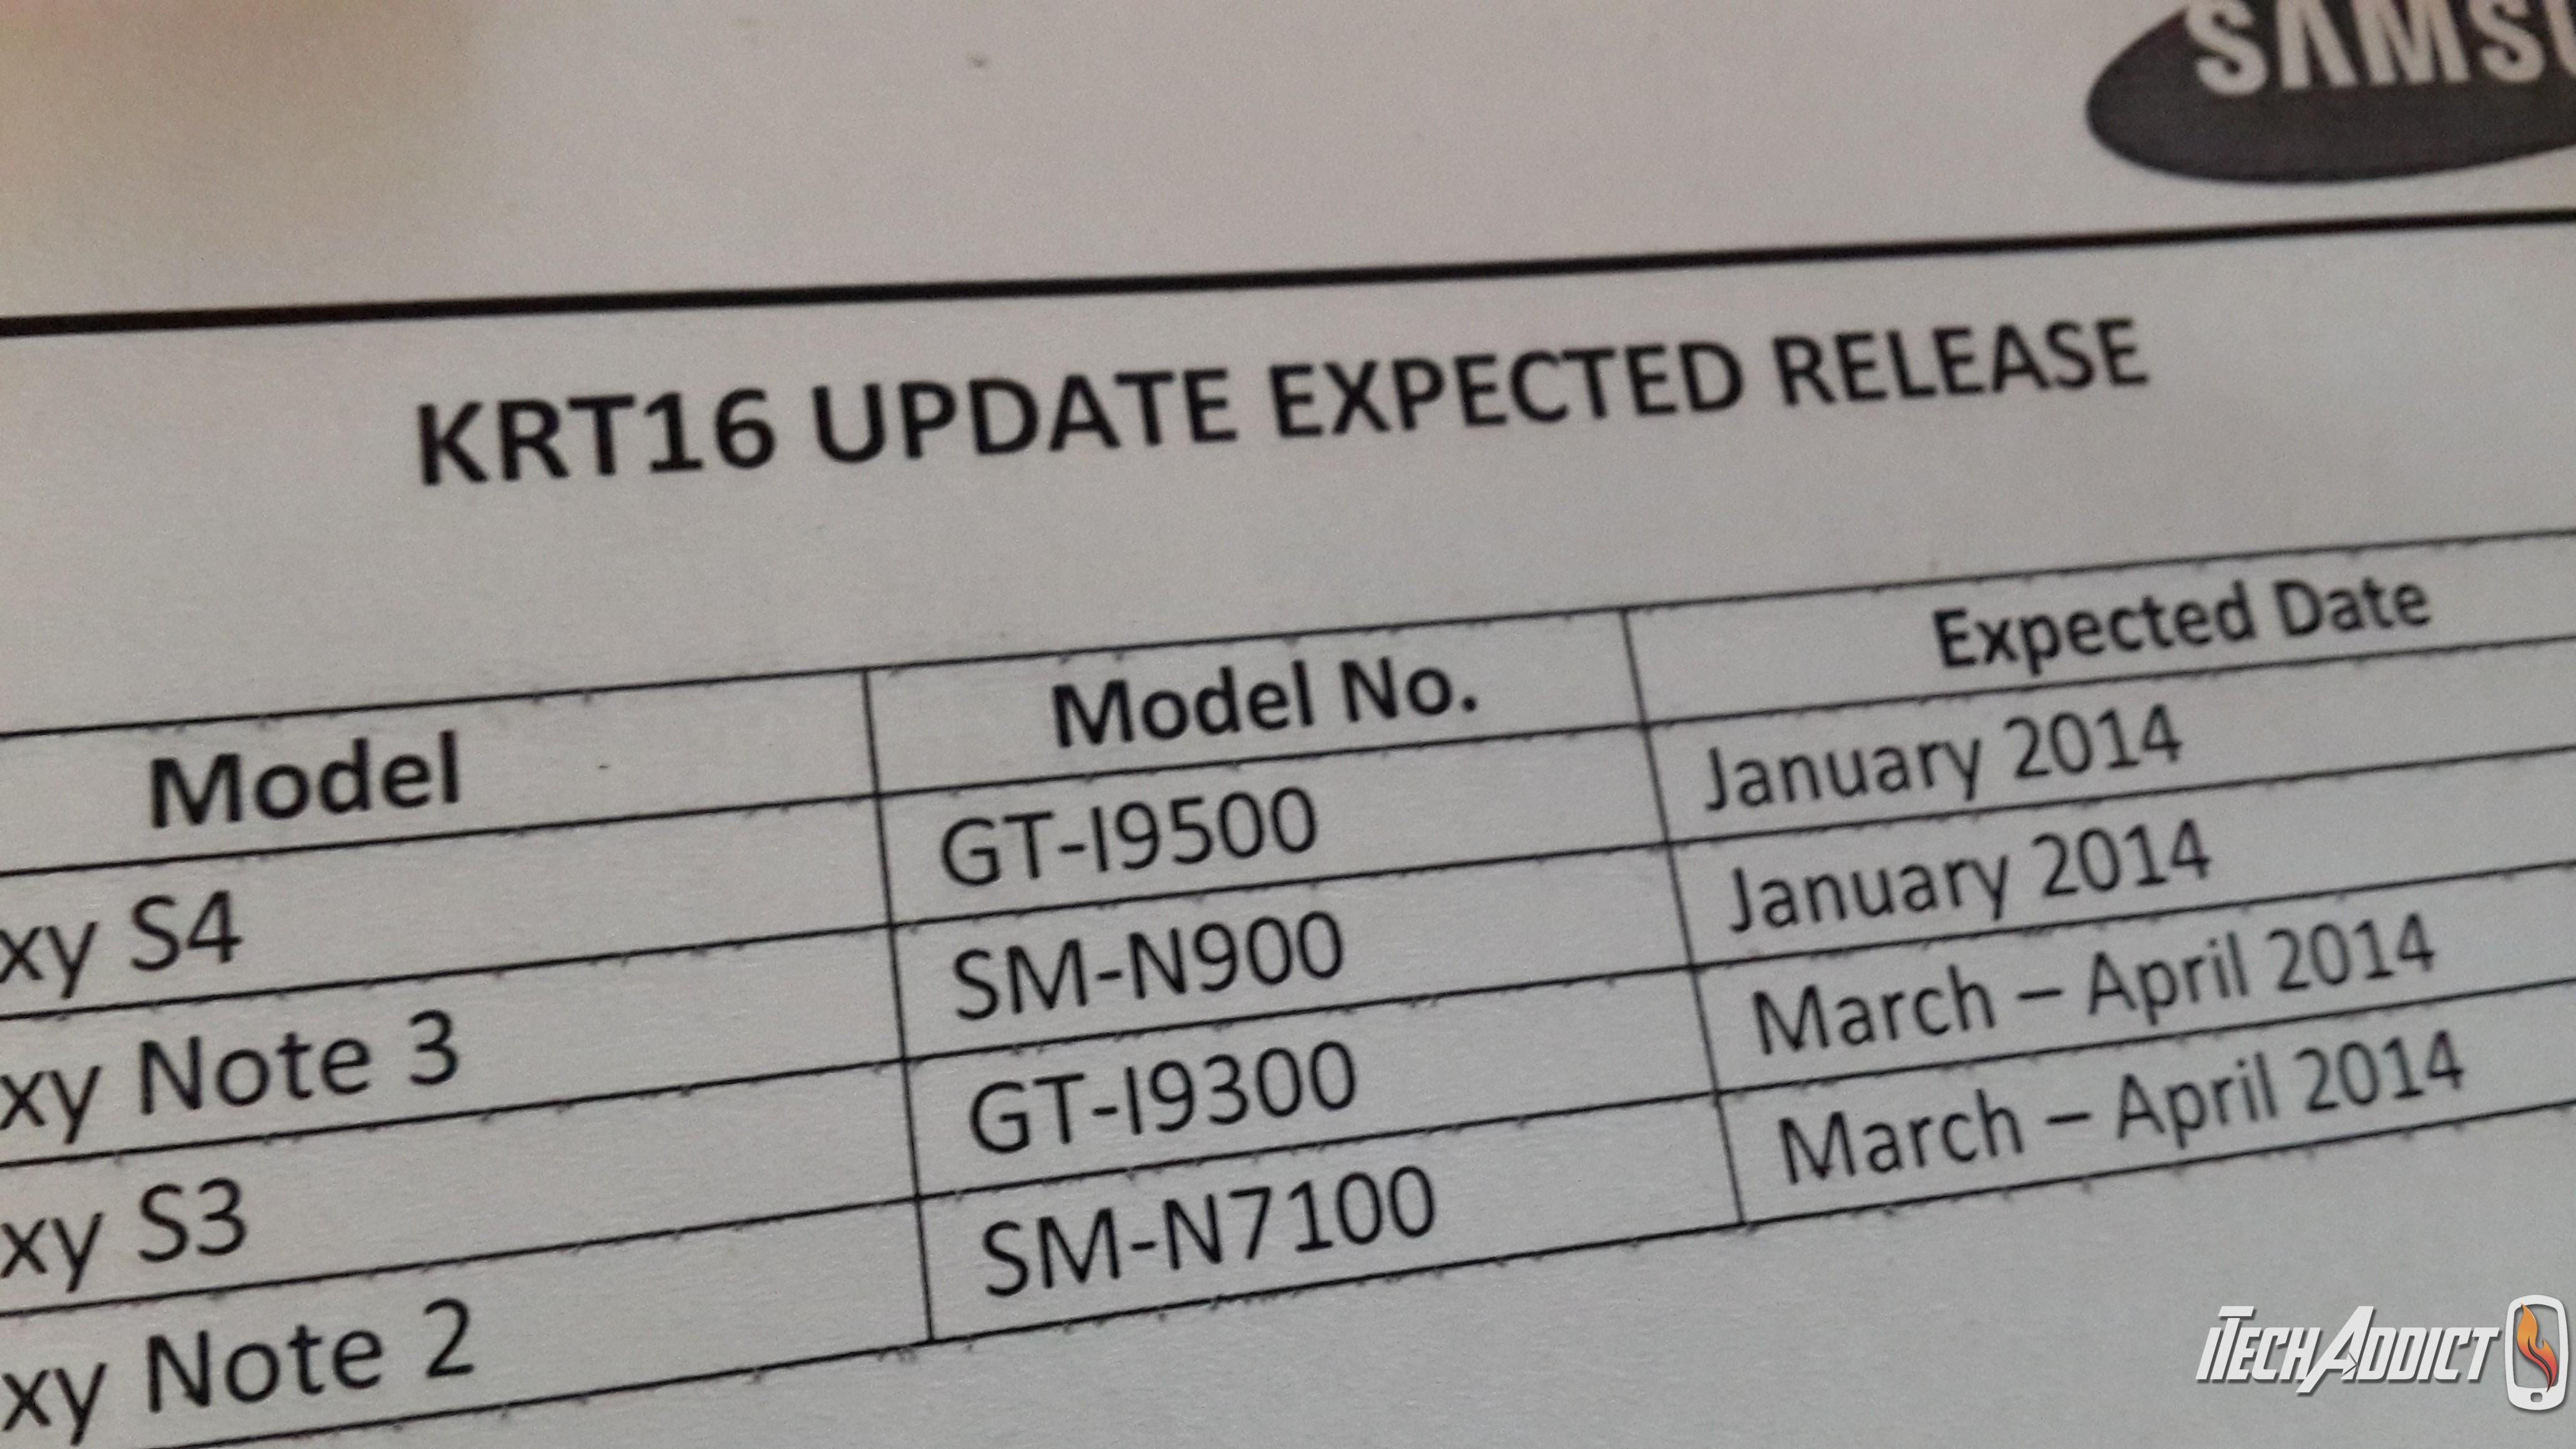 Leaked Samsung Memo Points to January KitKat Release for